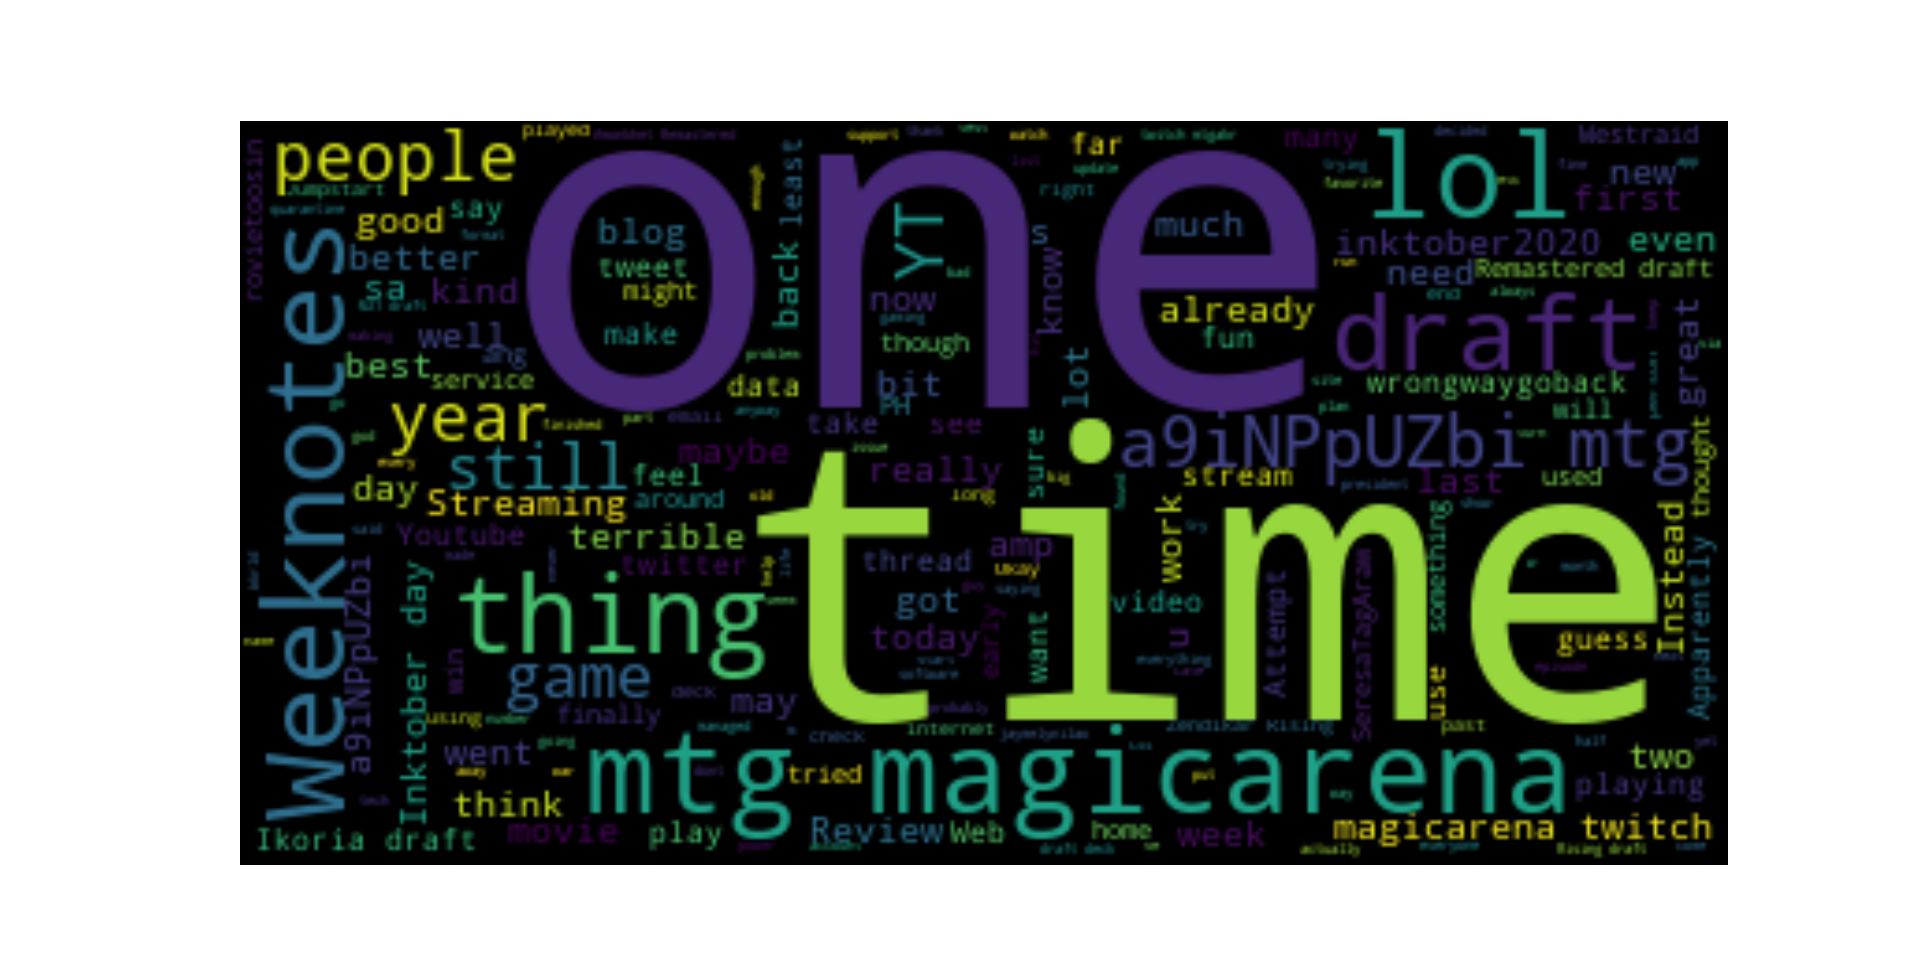 2020 tweets word cloud